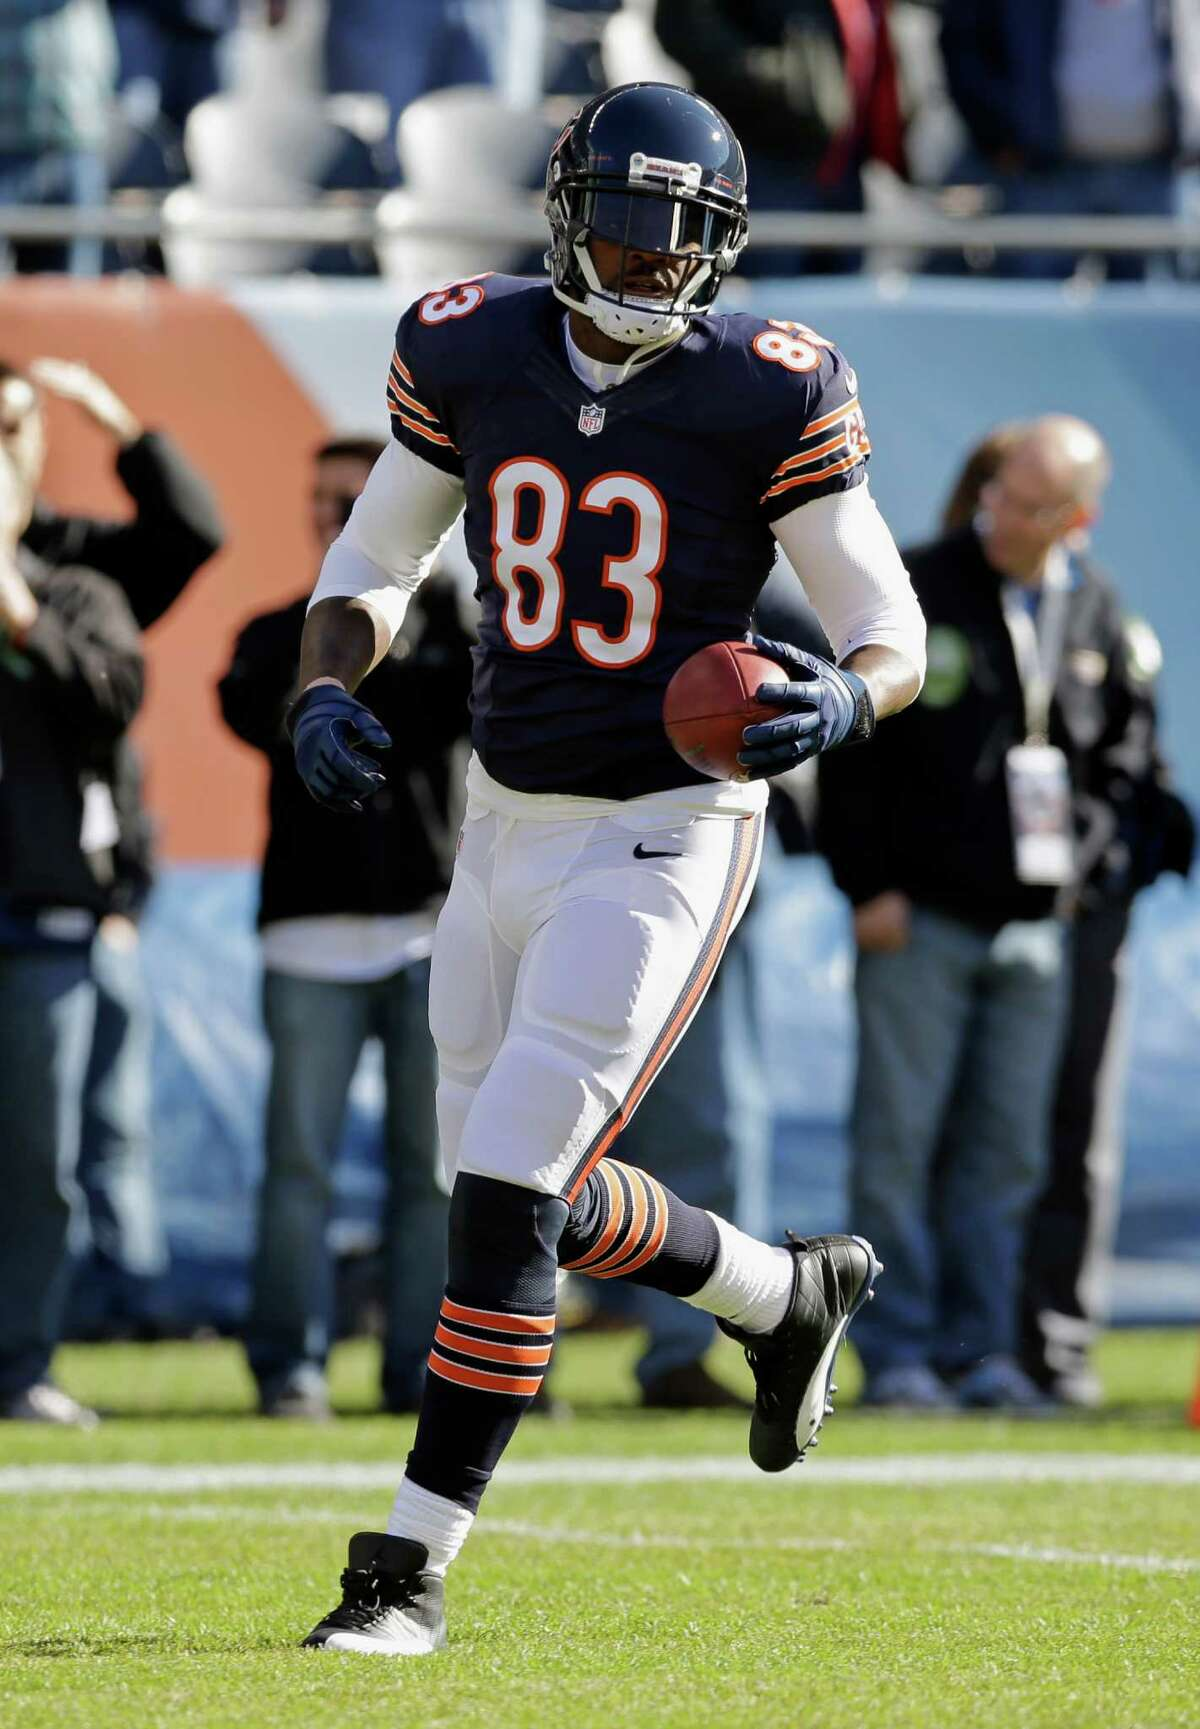 Chicago Bears tight end Martellus Bennett (83) warms up before an NFL football game against the Detroit Lions, Sunday, Nov. 10, 2013, in Chicago. (AP Photo/Nam Y. Huh)